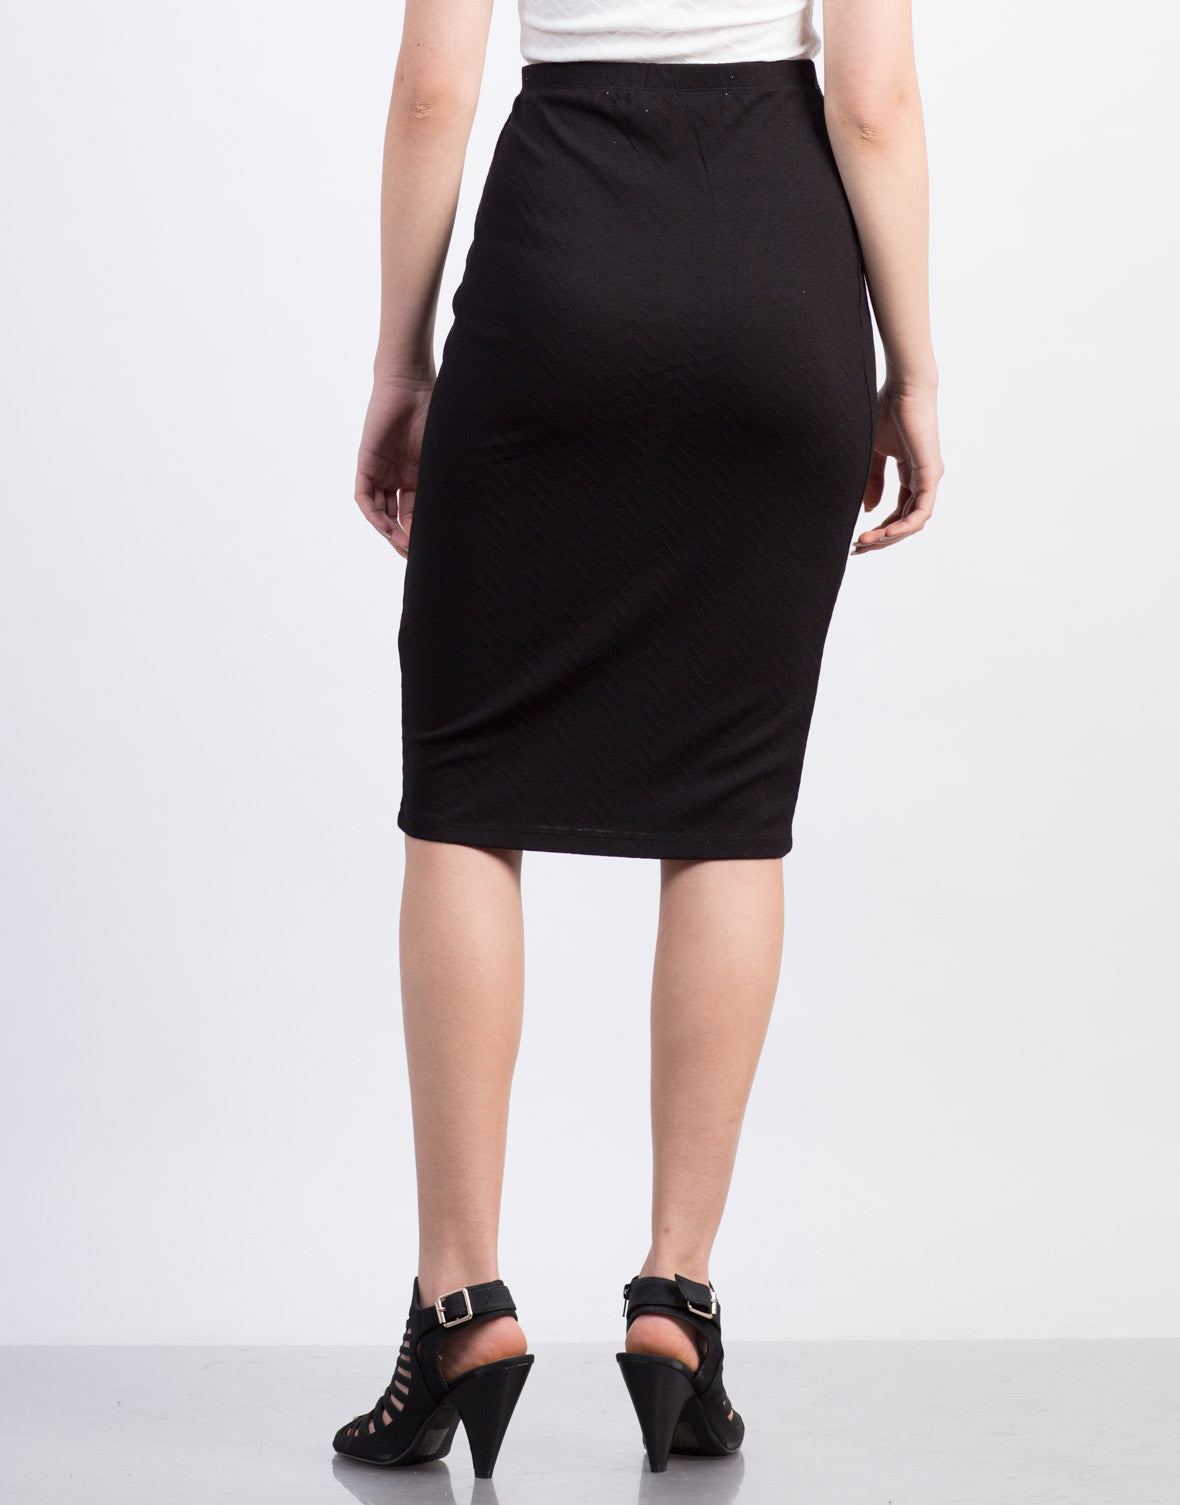 Back View of Zig Zag Pencil Skirt